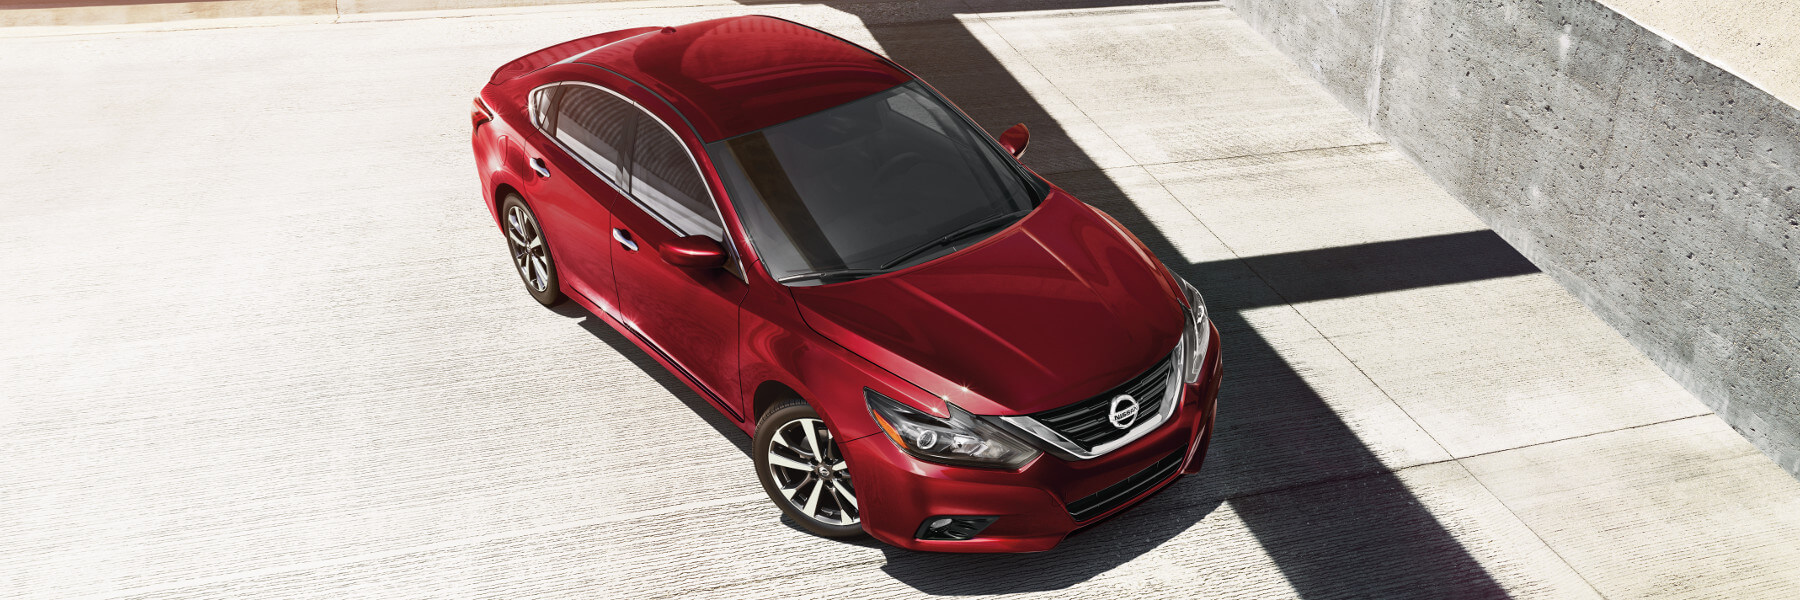 A red 2018 Nissan Altima